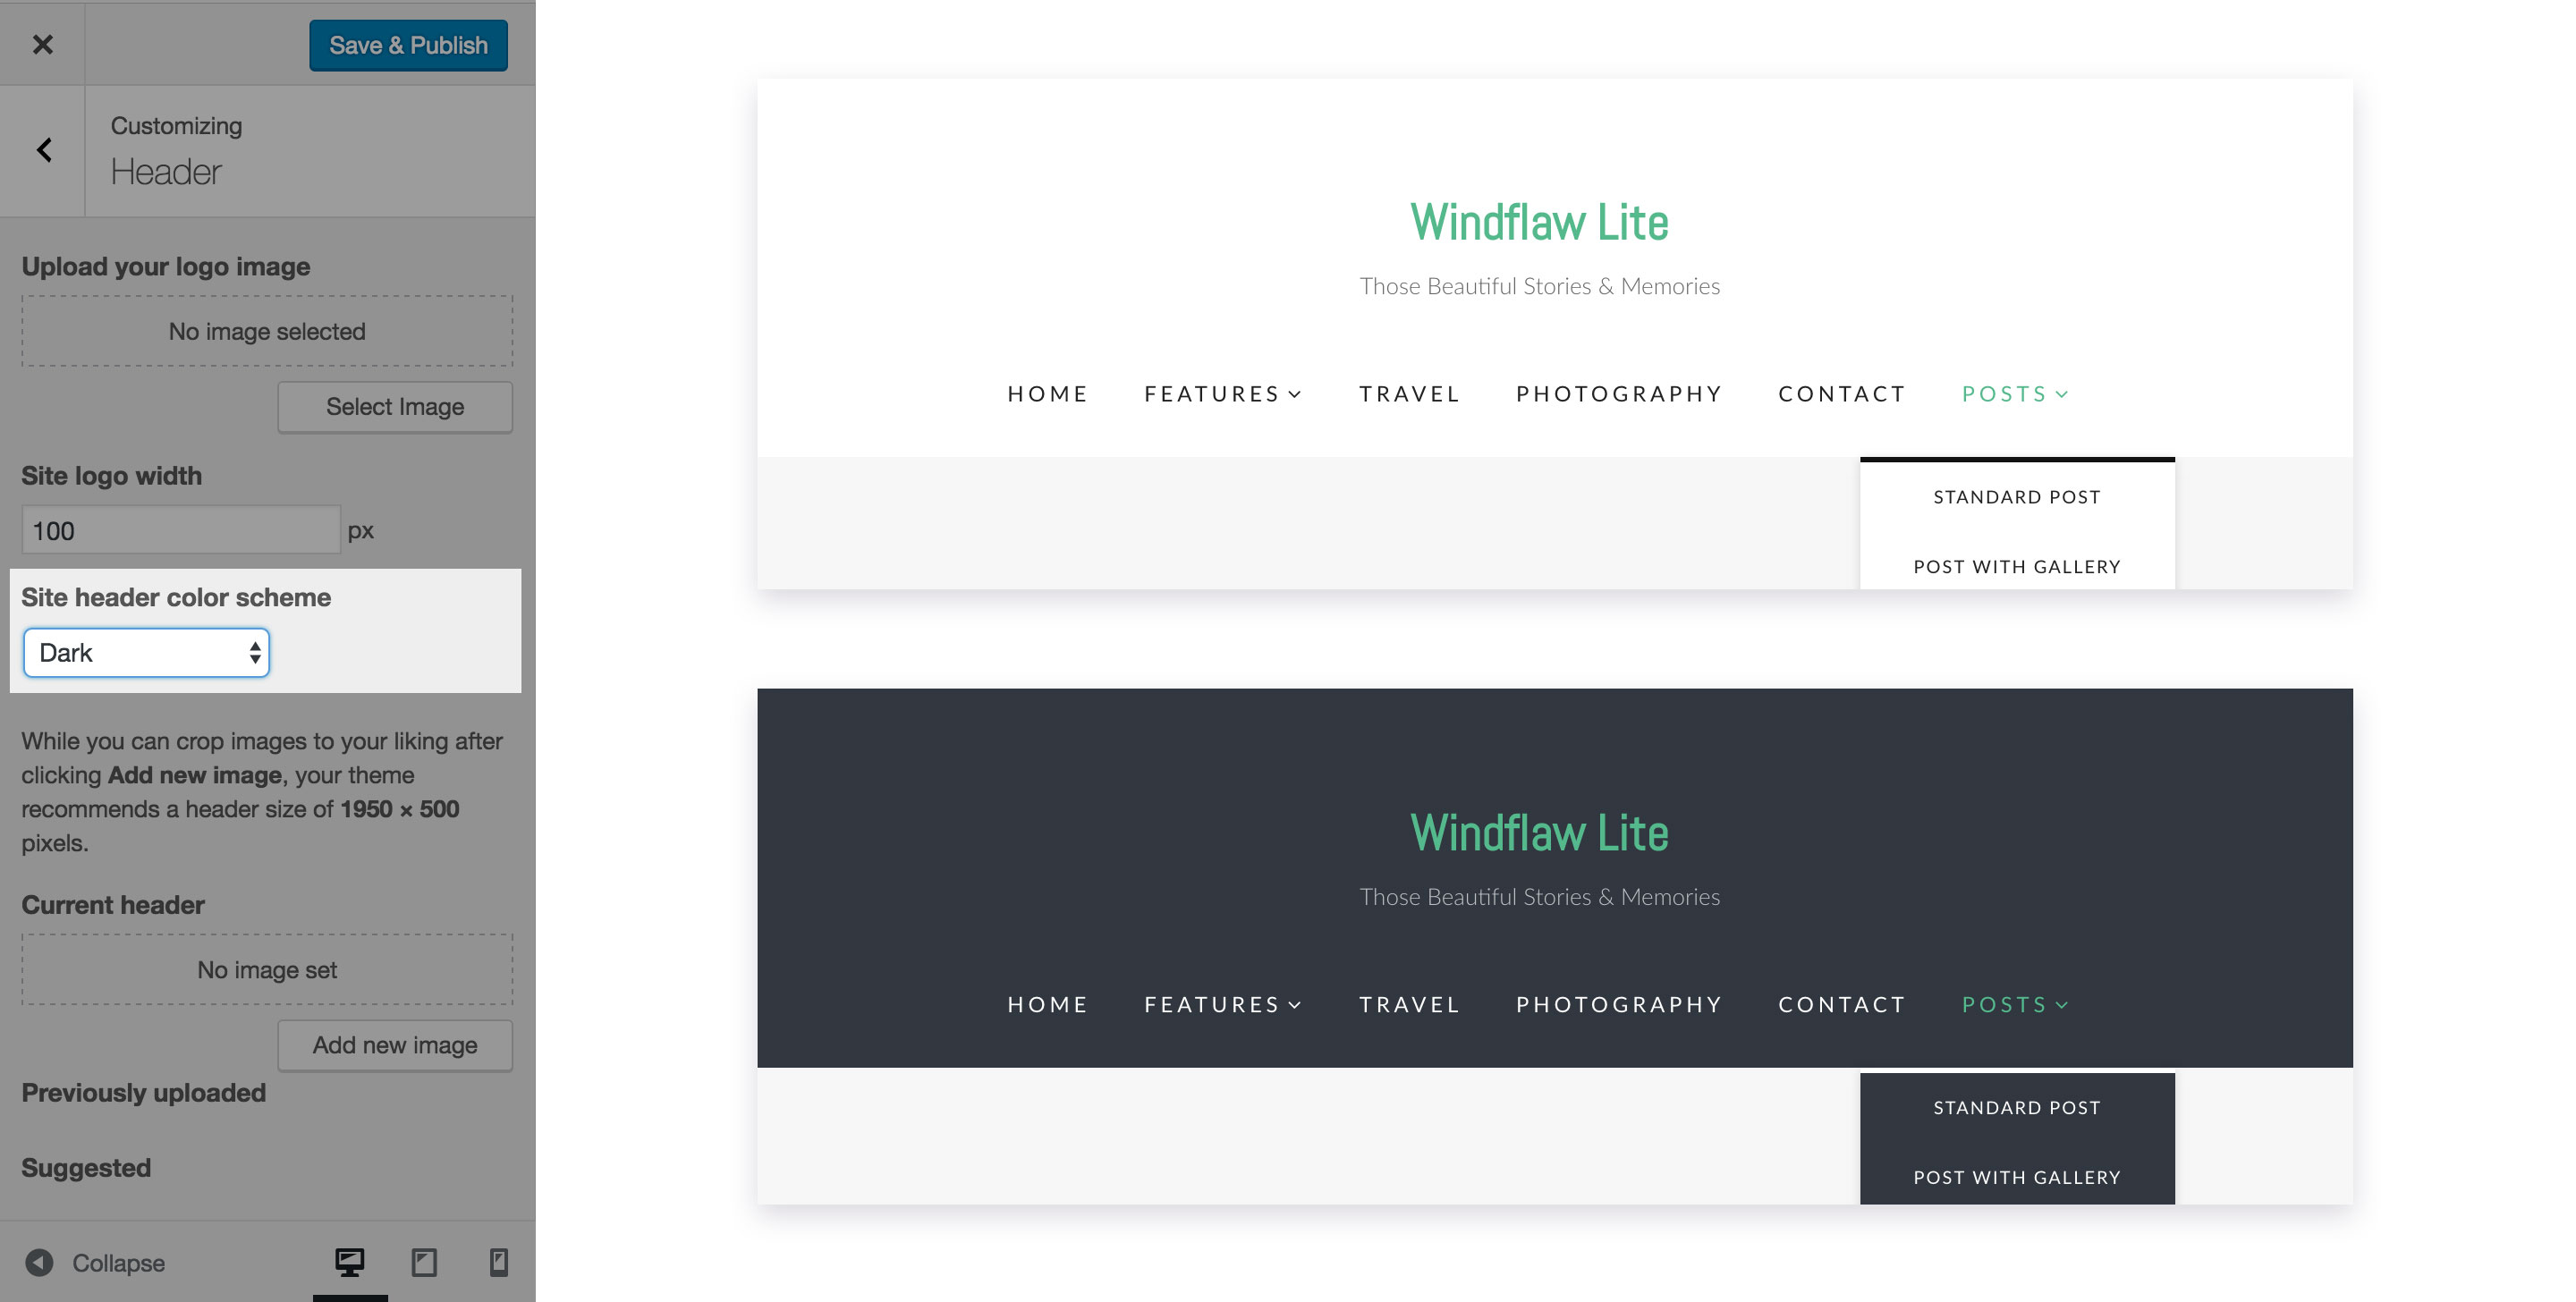 Site header color switch.